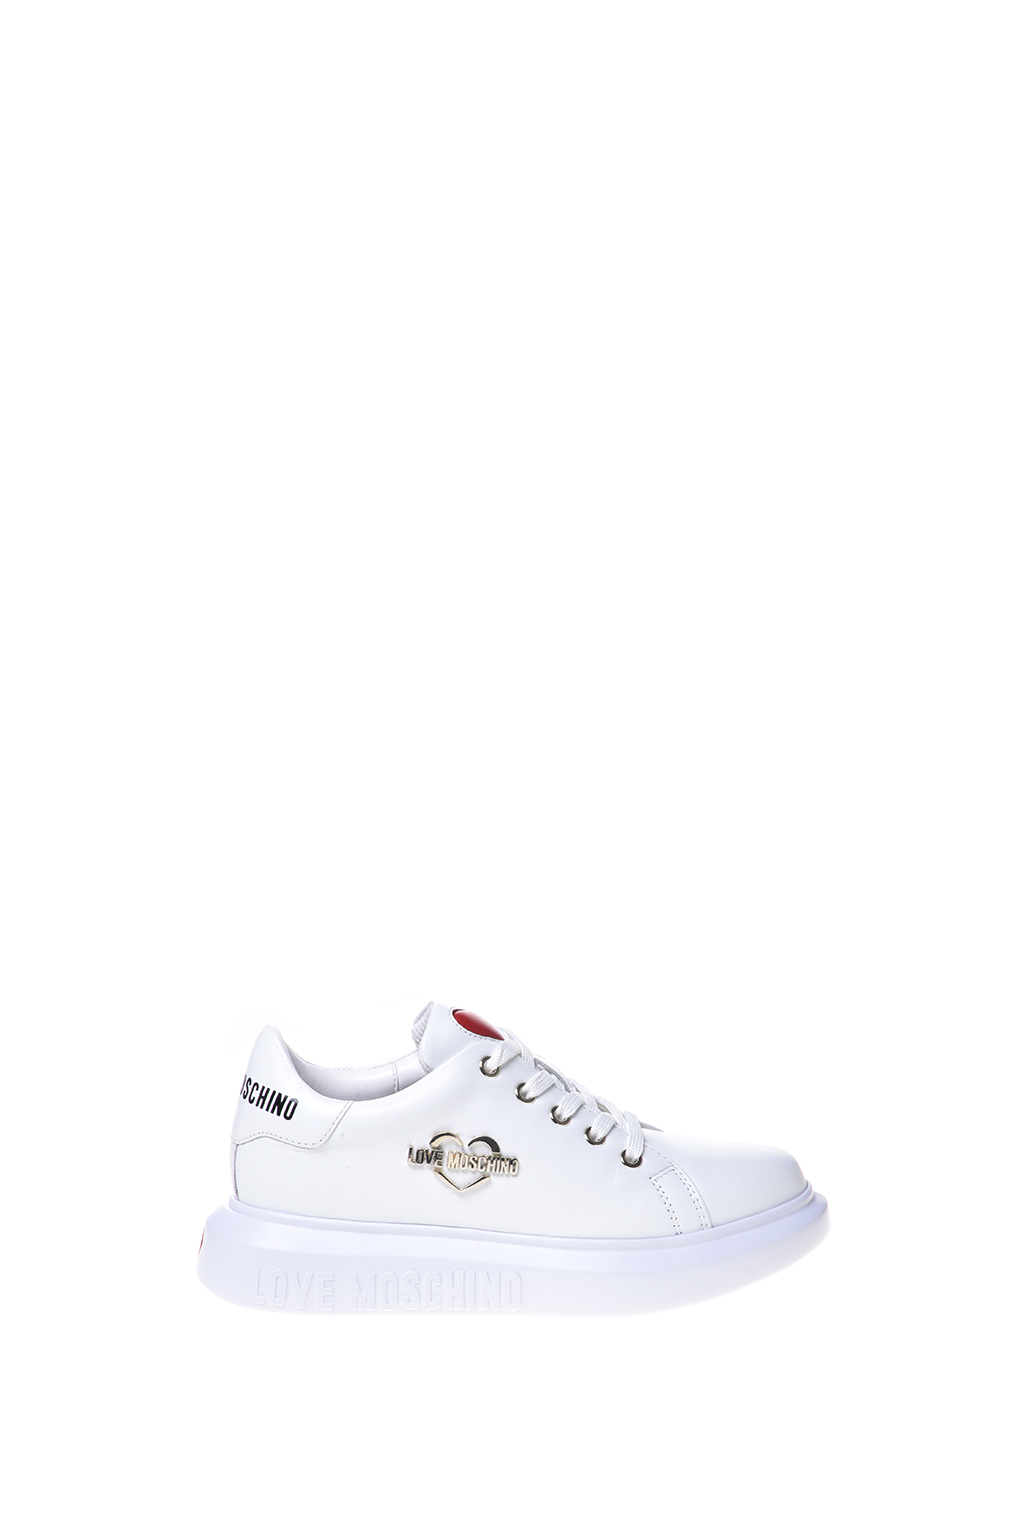 Love Moschino sneakers med logo, white, 41